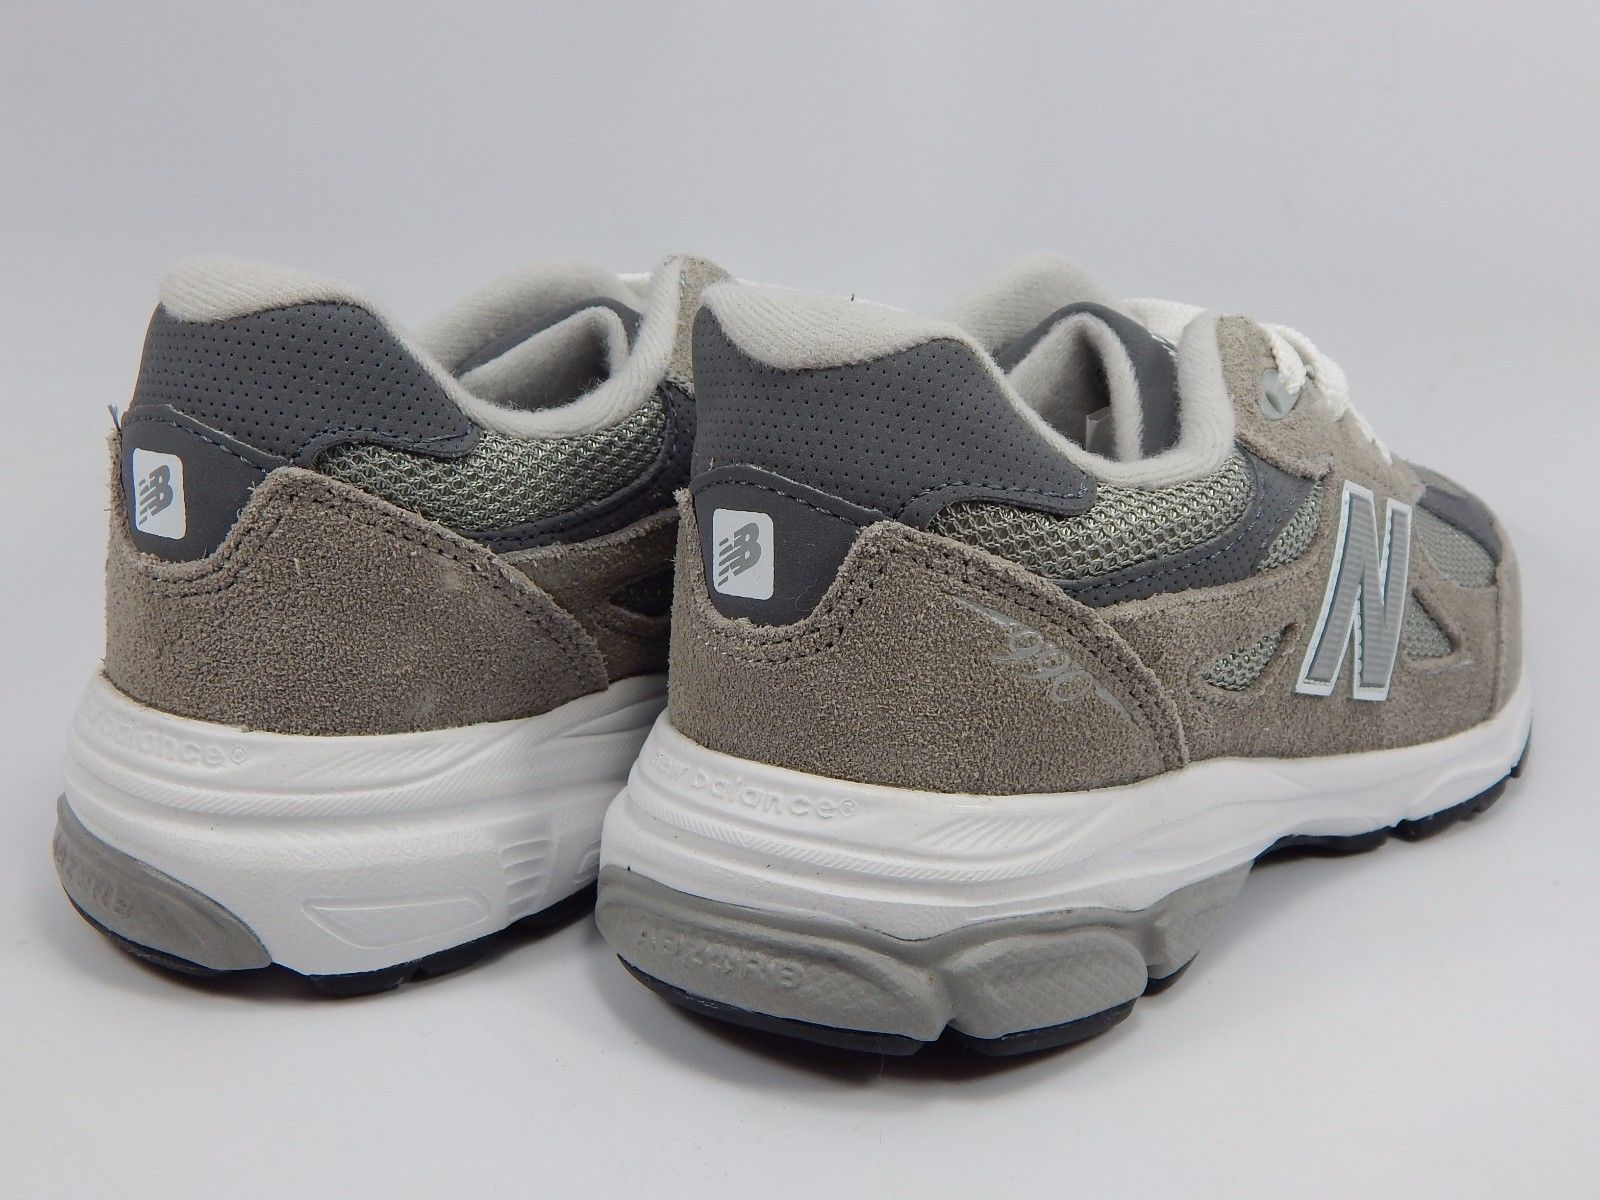 MISMATCH New Balance 990 Boy's Youth Athletic Shoes Size 4 M Left & 3.5 M Right